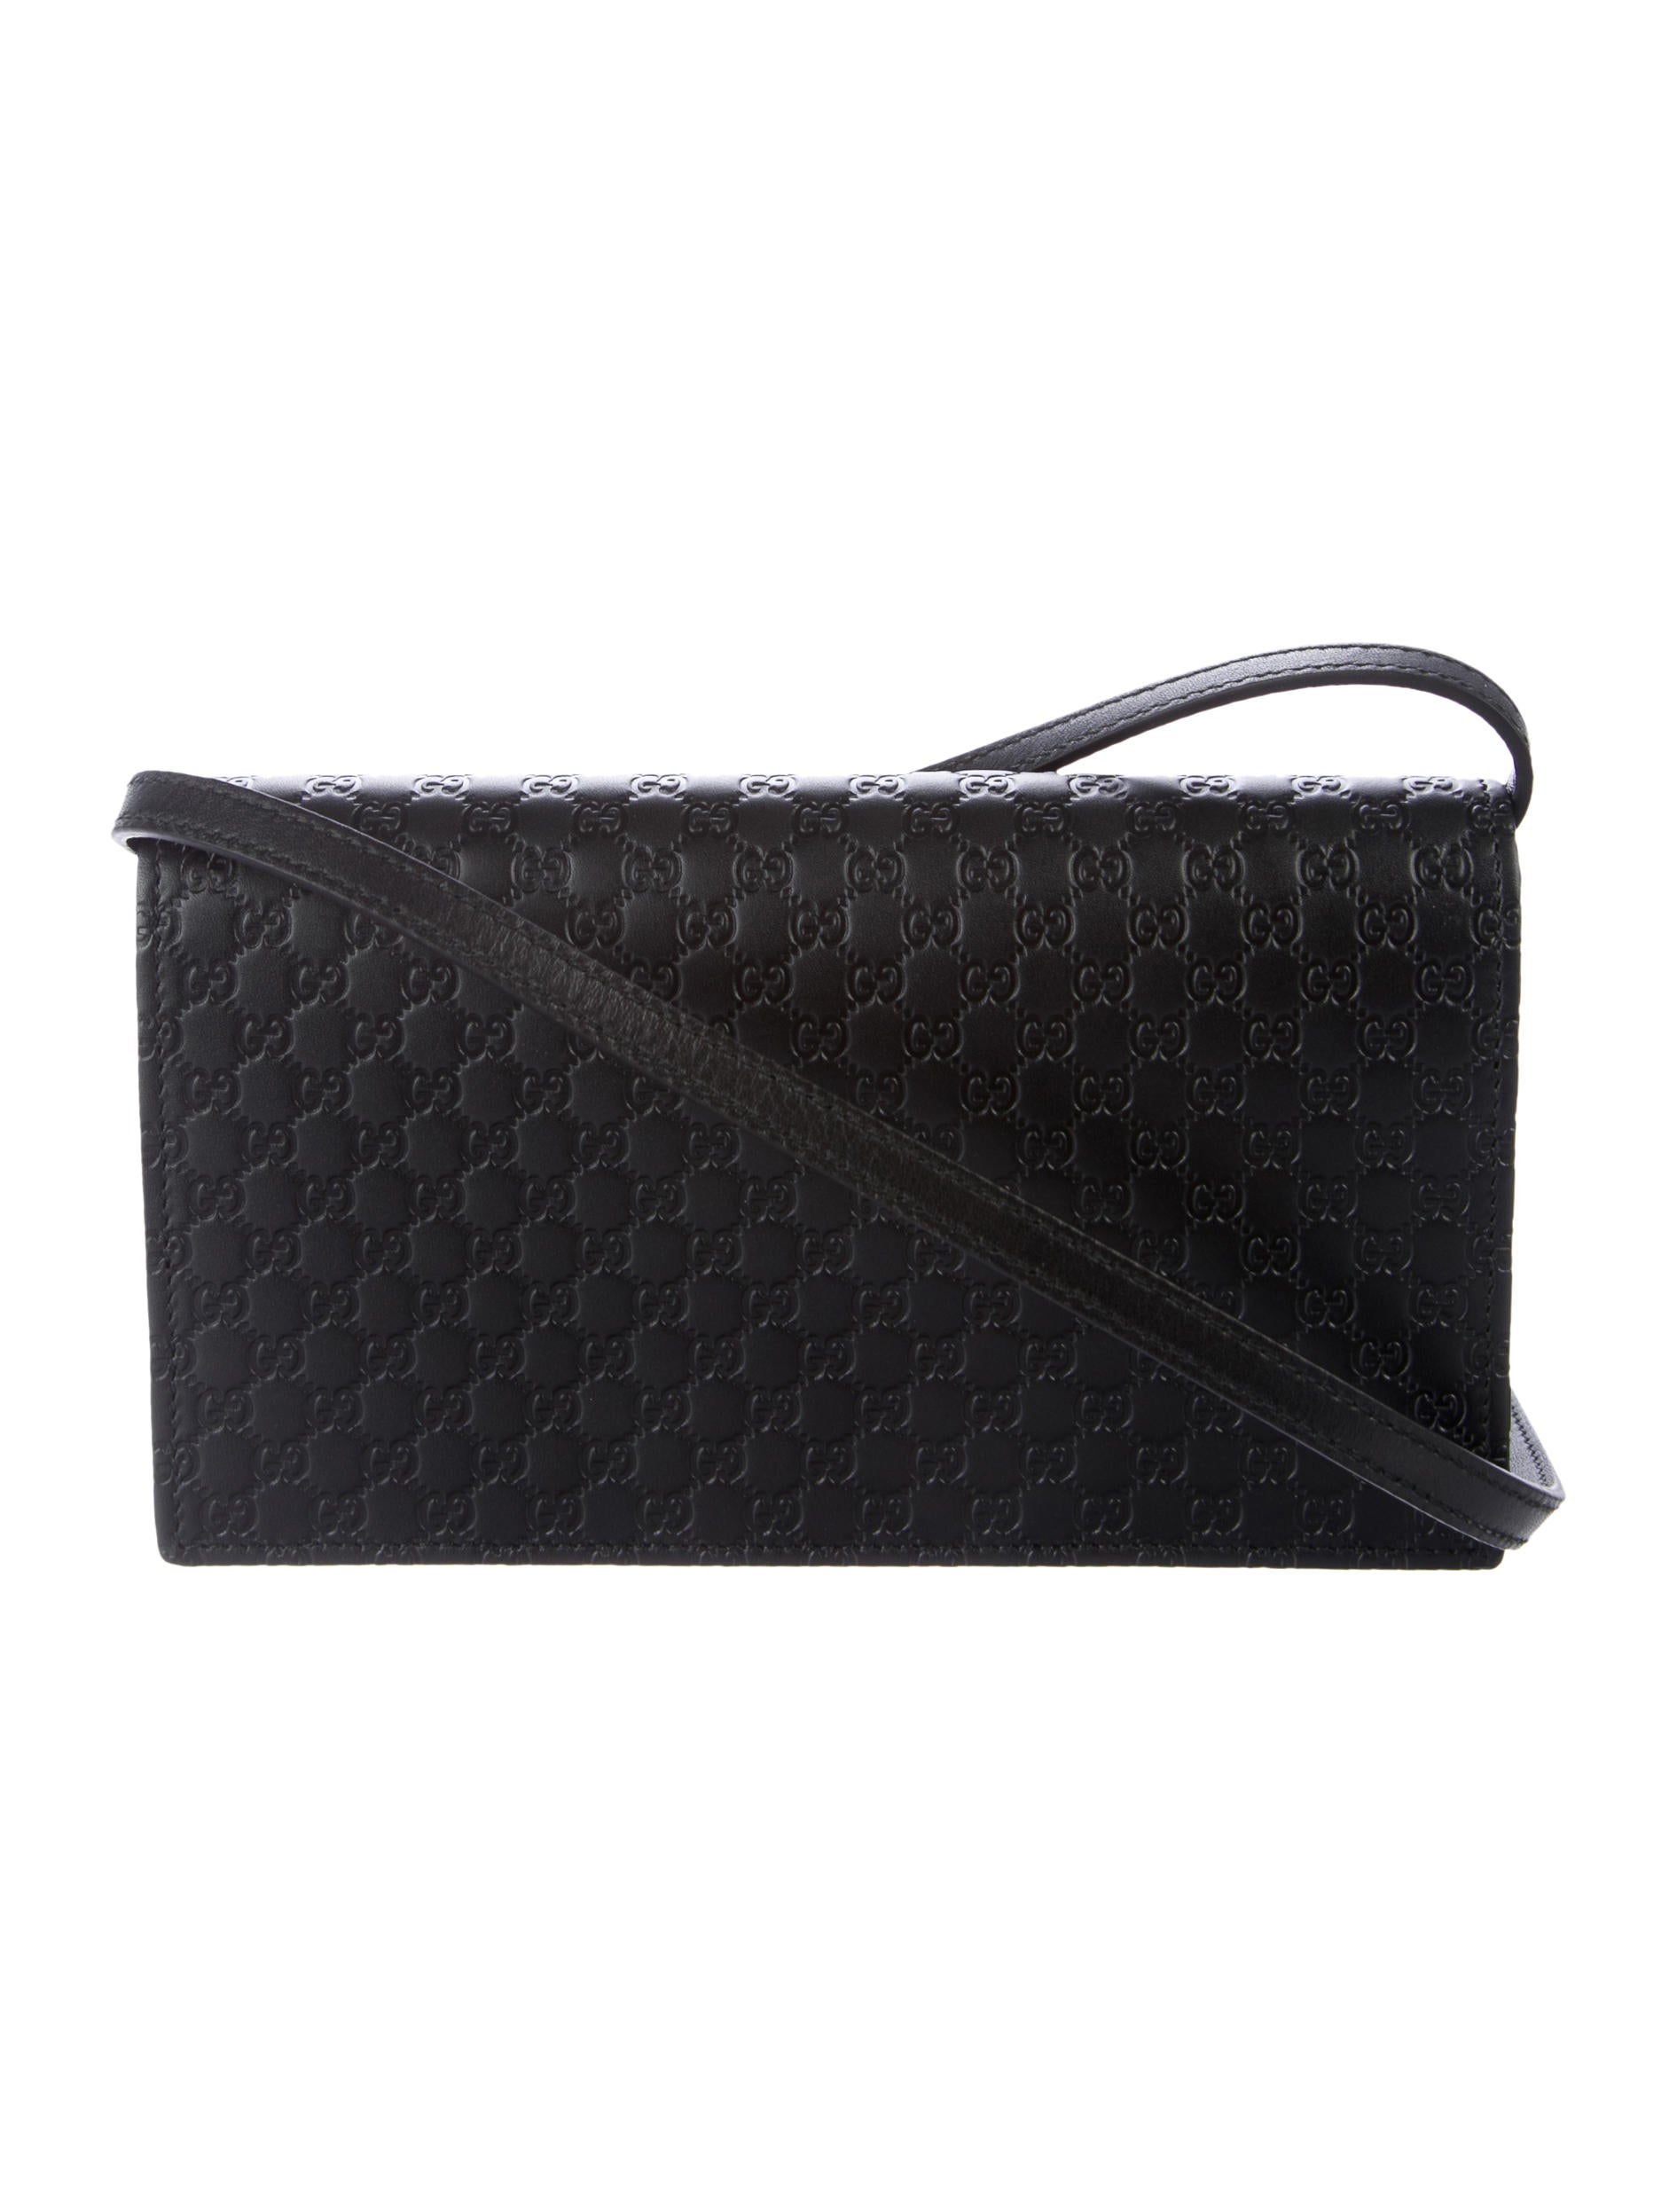 d719ec7a86c5 Gucci Microguccissima Wallet Crossbody | Stanford Center for ...